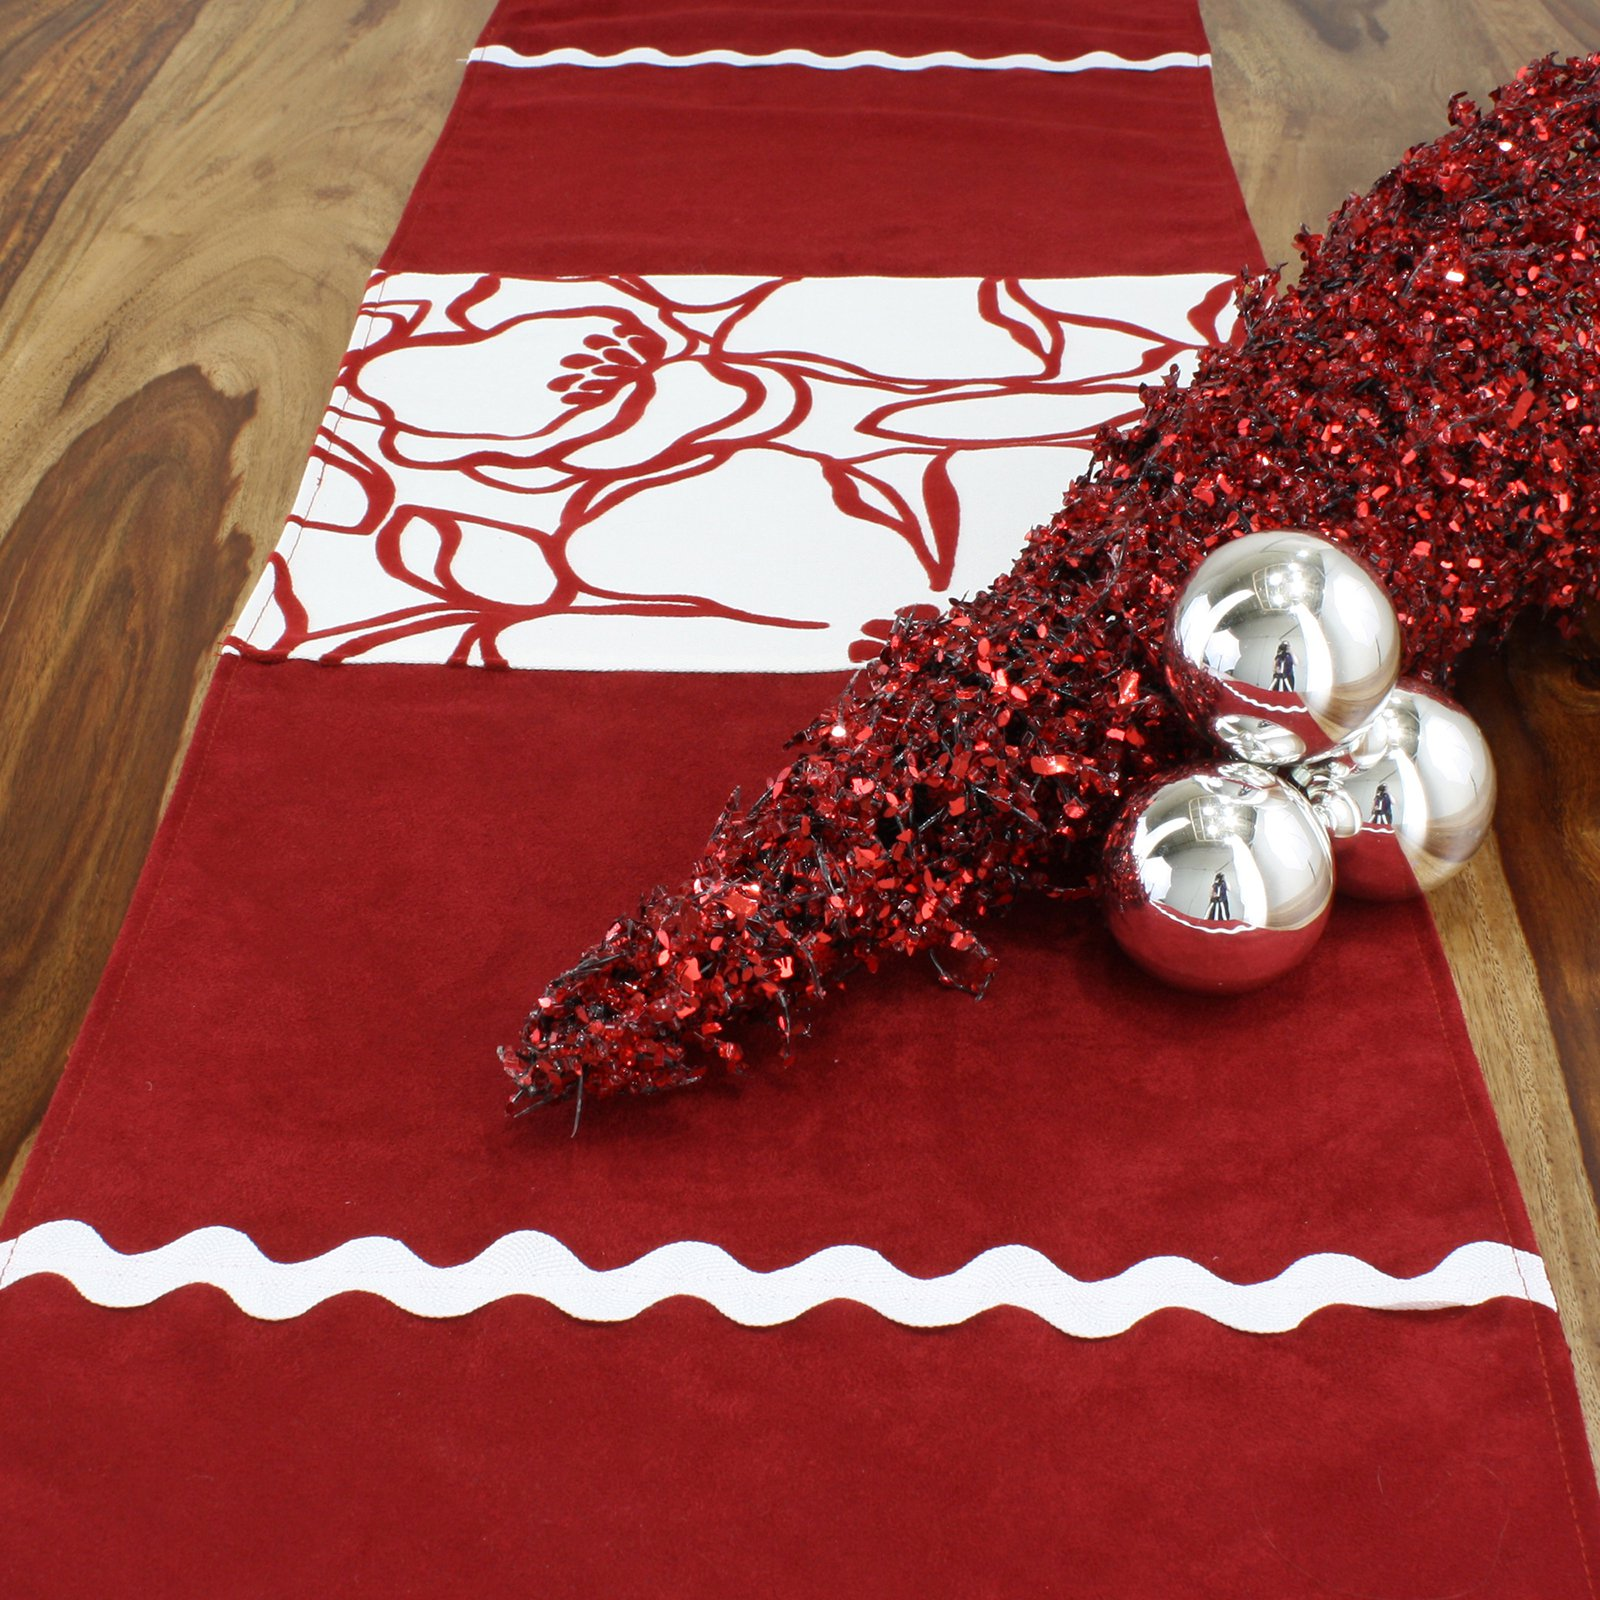 Chooty and Co Passion Suede Cinnabar Joliet Scarlet Table Runner